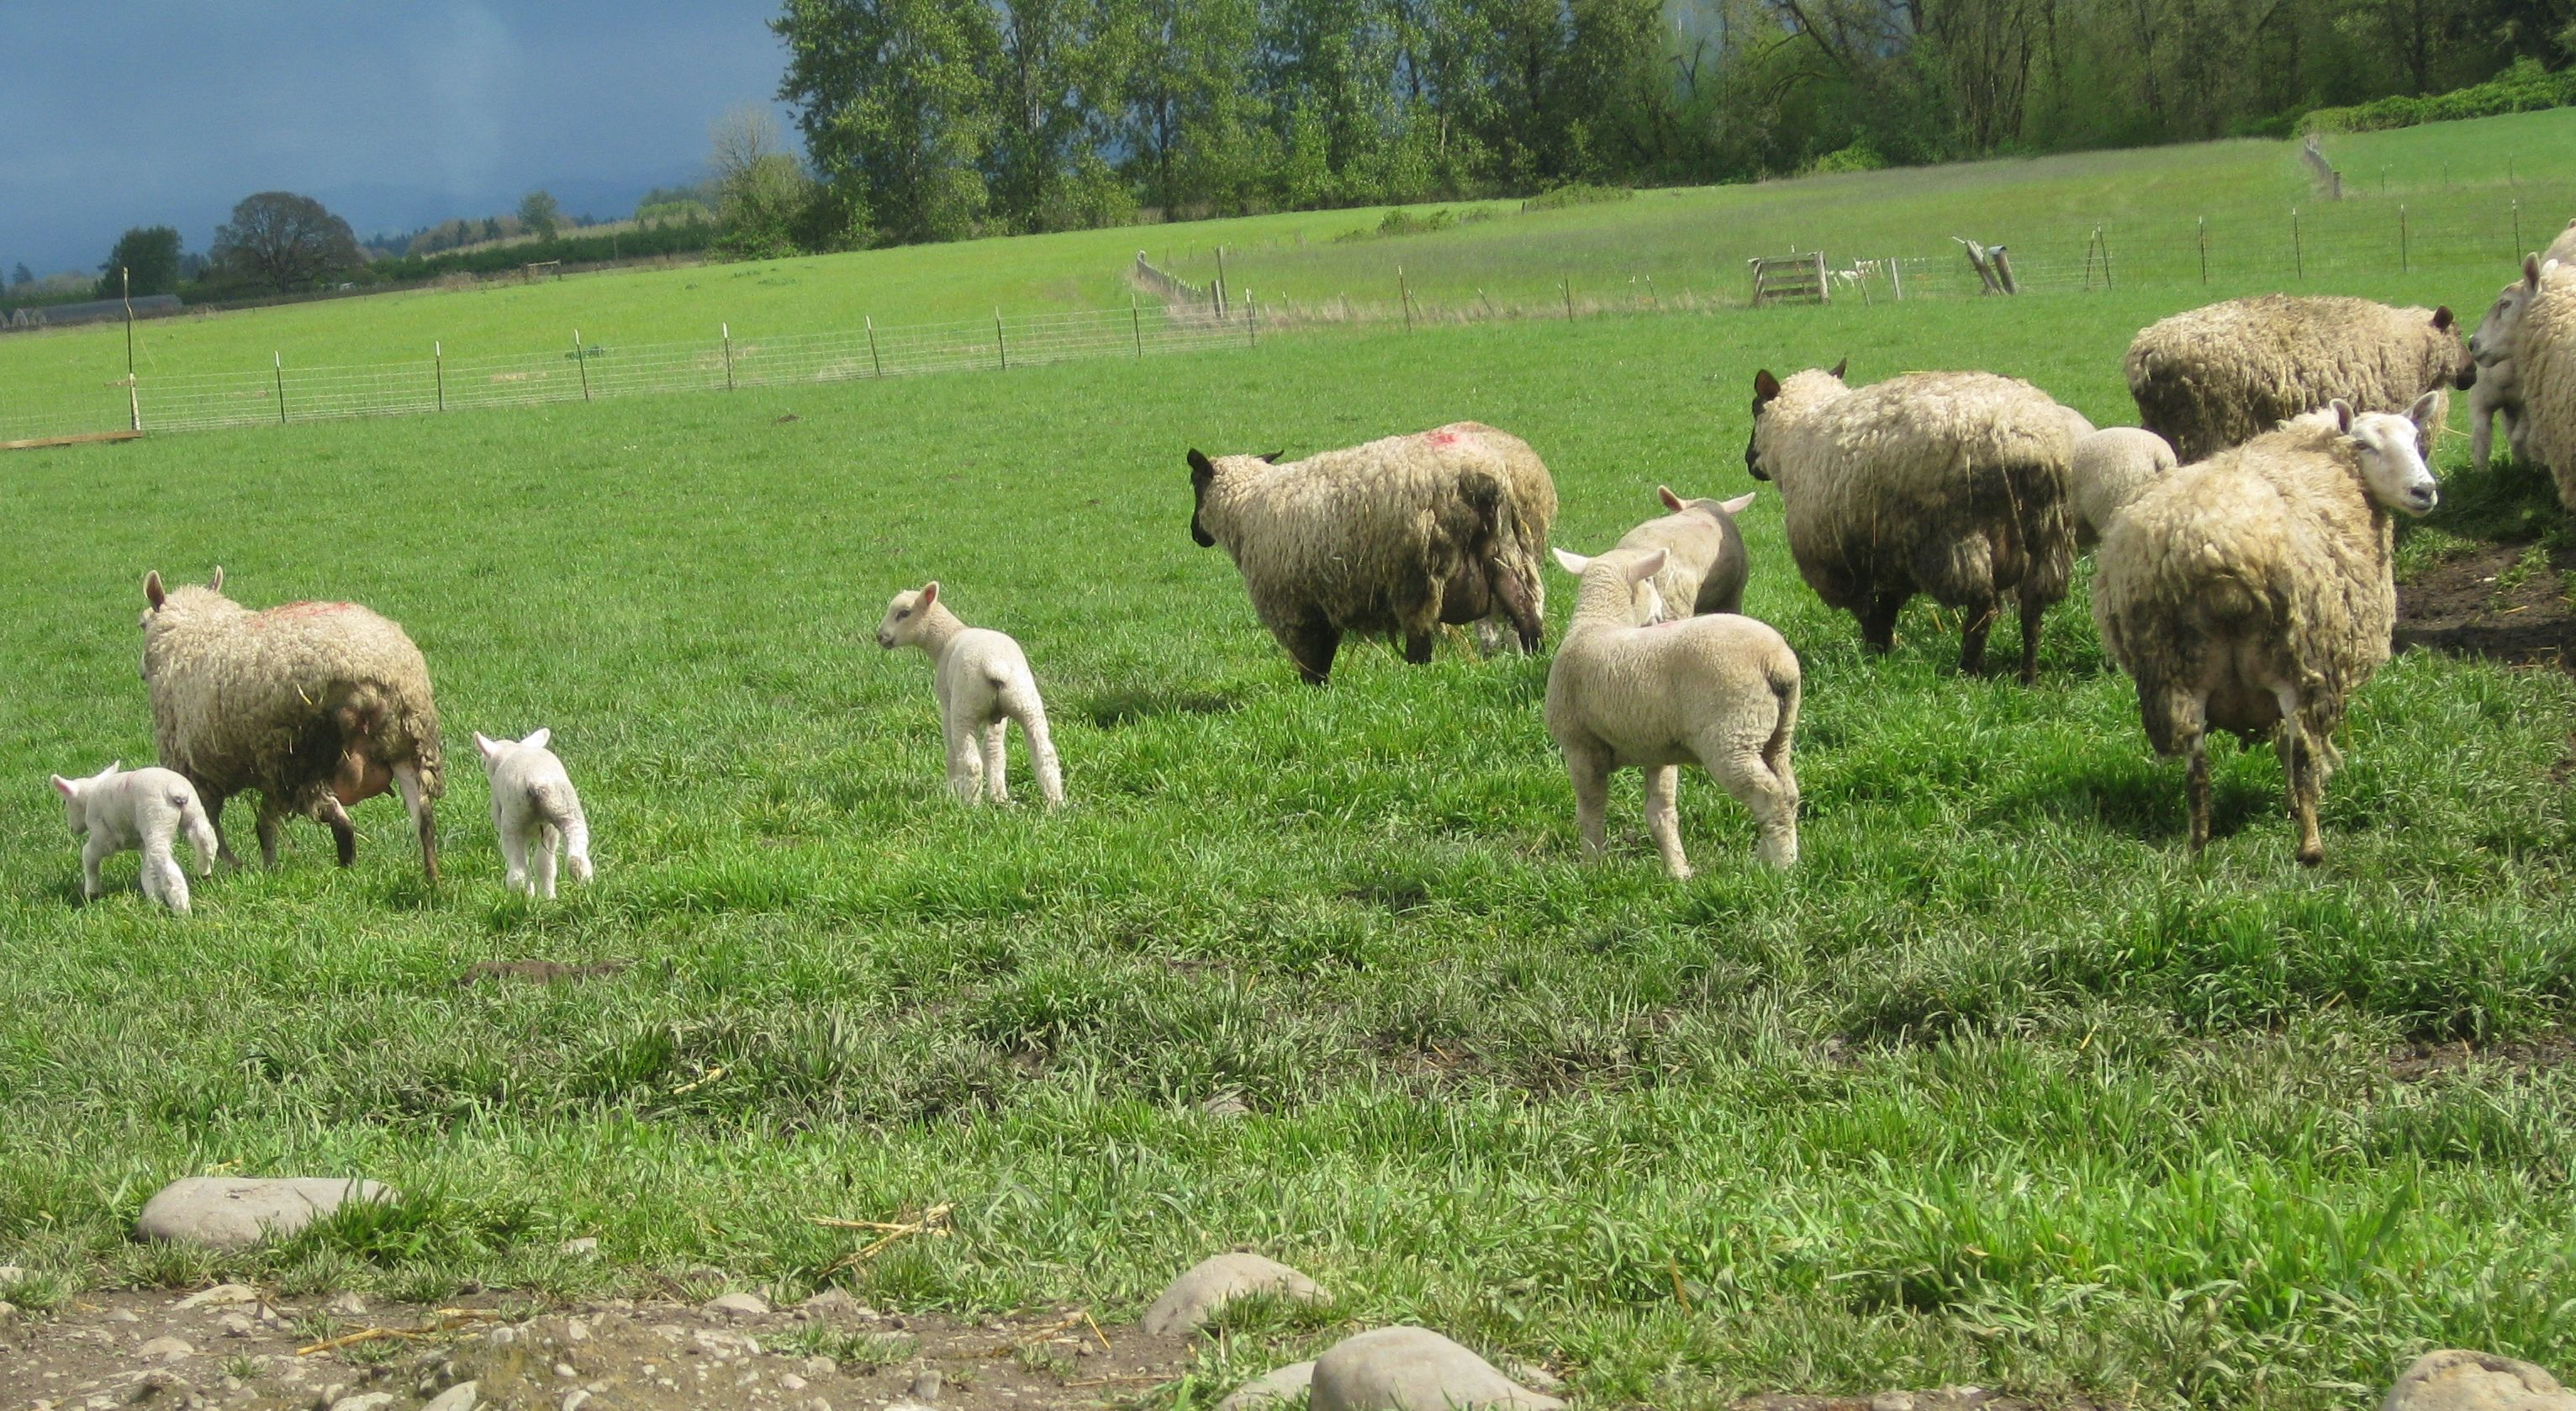 b64a29e81be321468c4bfa5c67835260 - Is Sheep Manure Good For Vegetable Gardens